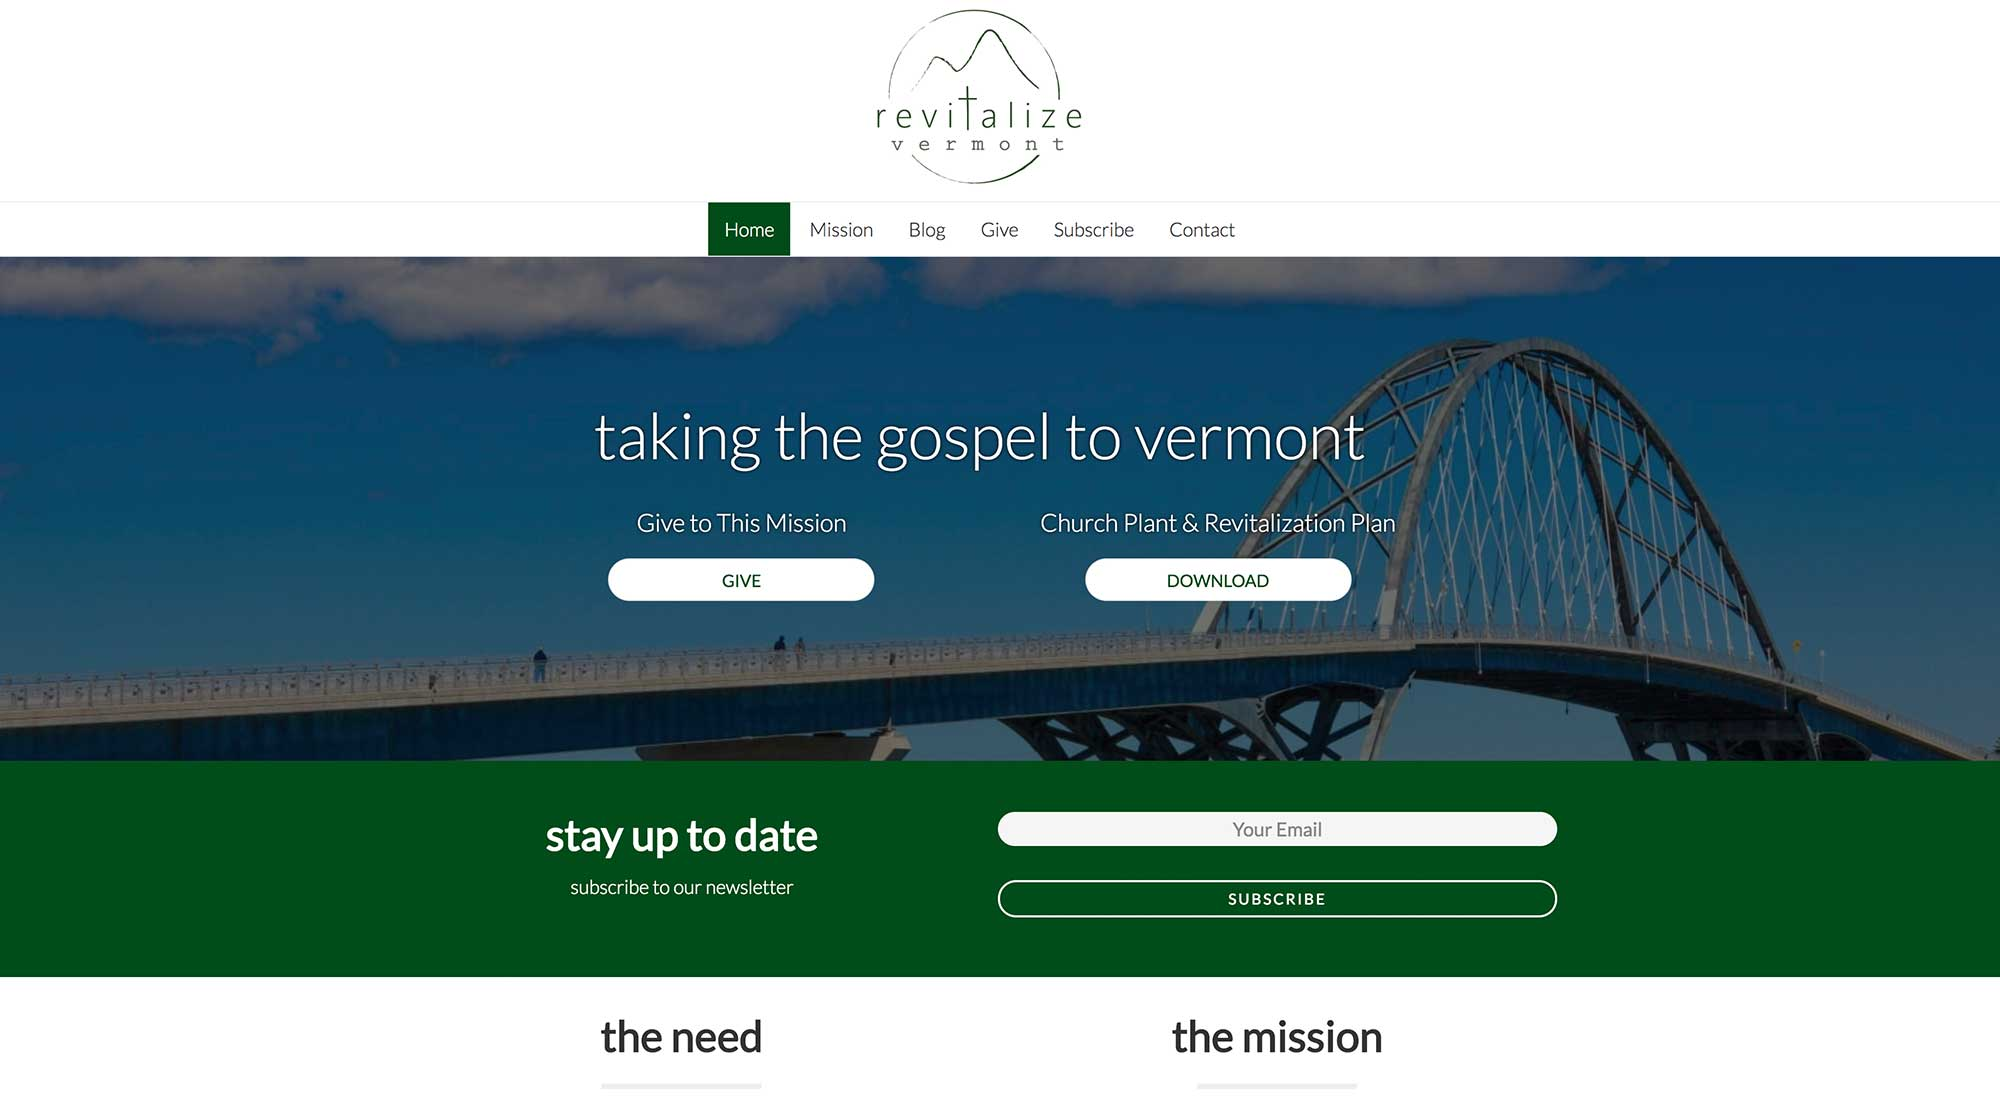 revitalize vermont website design